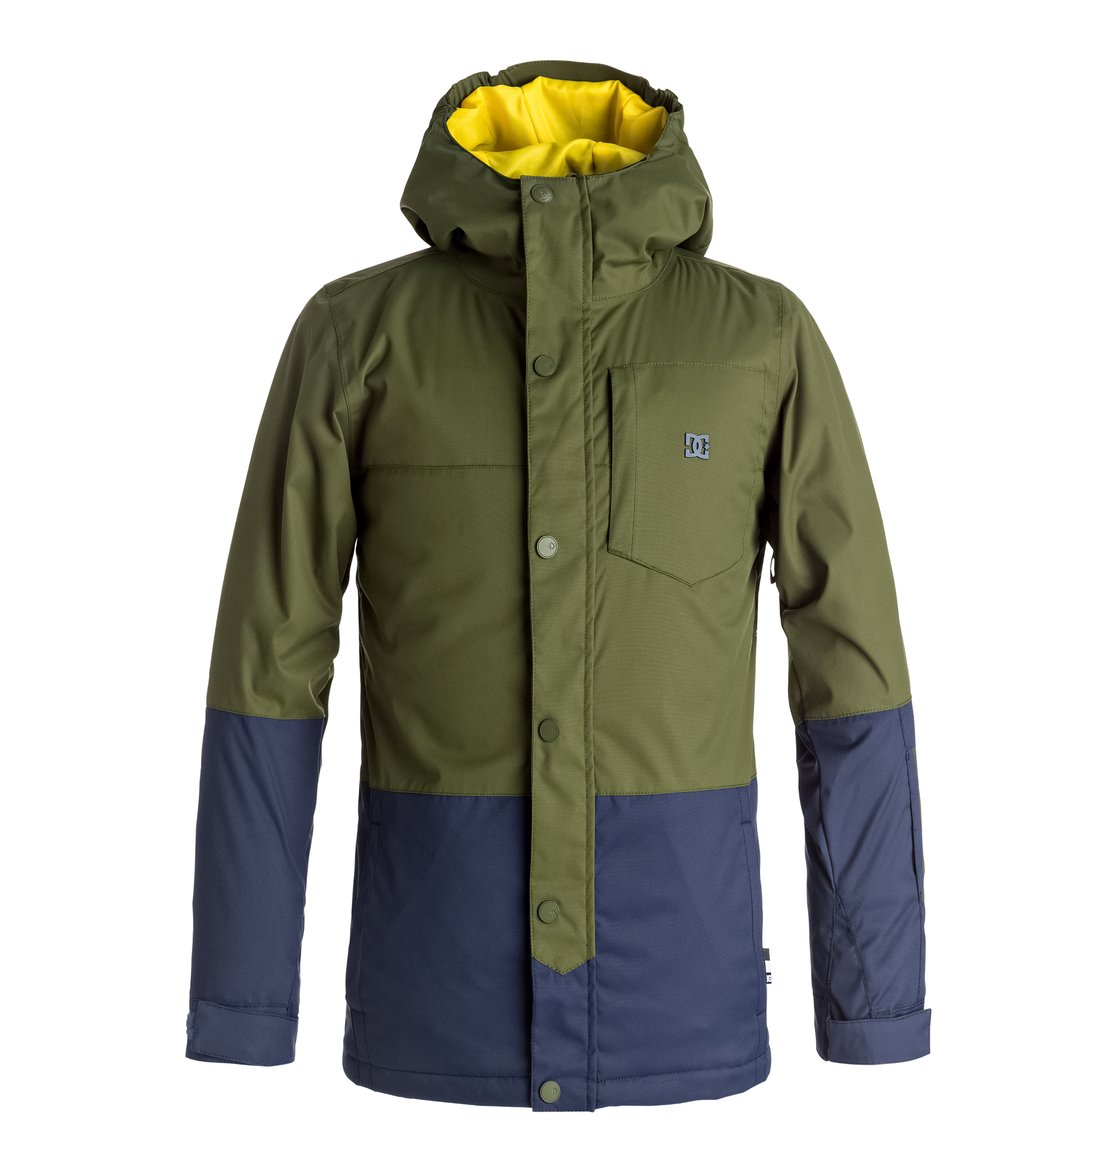 Defy - Snow Jacket от DC Shoes